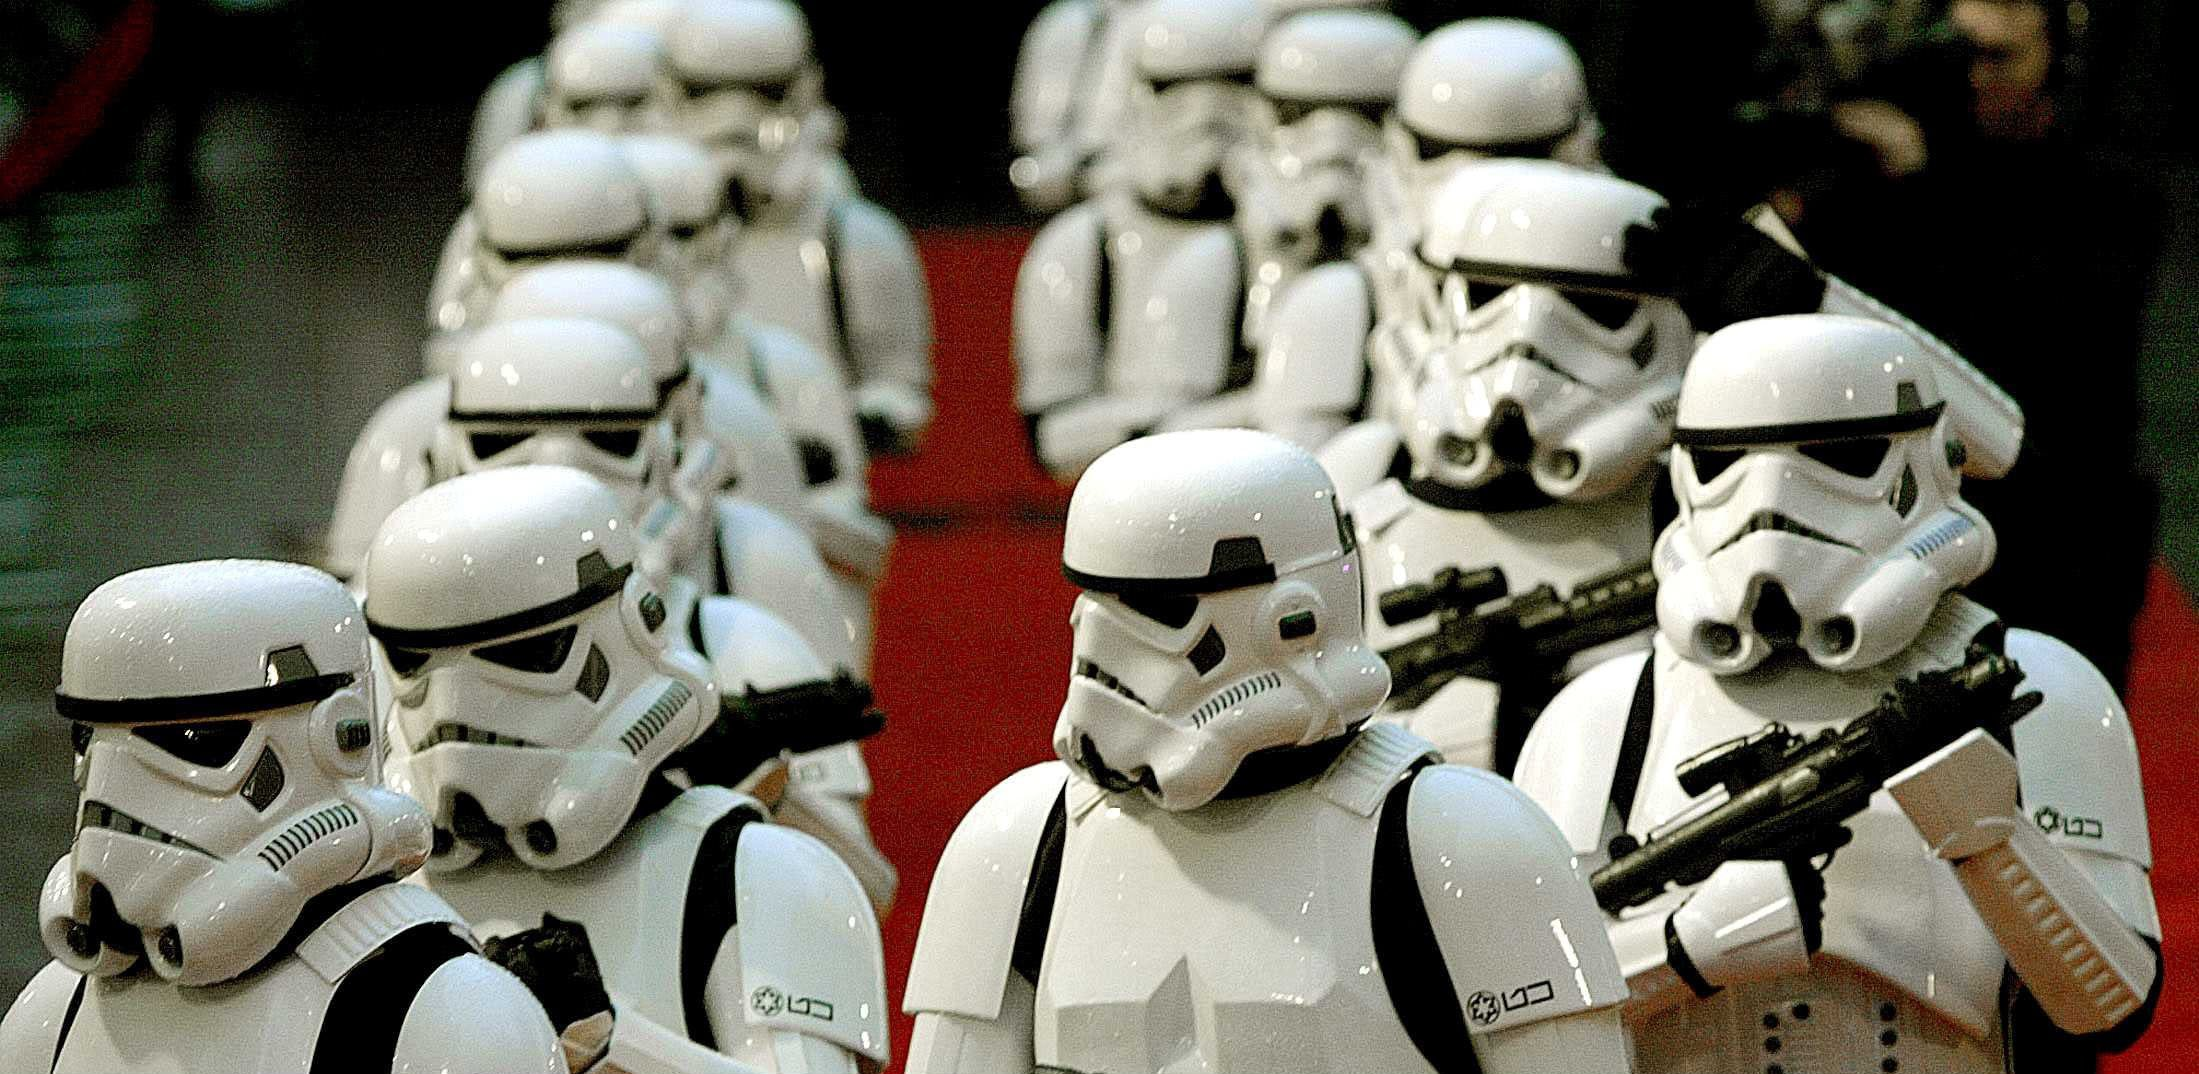 Disneyland is recruiting Stormtroopers for latest Star Wars adventure